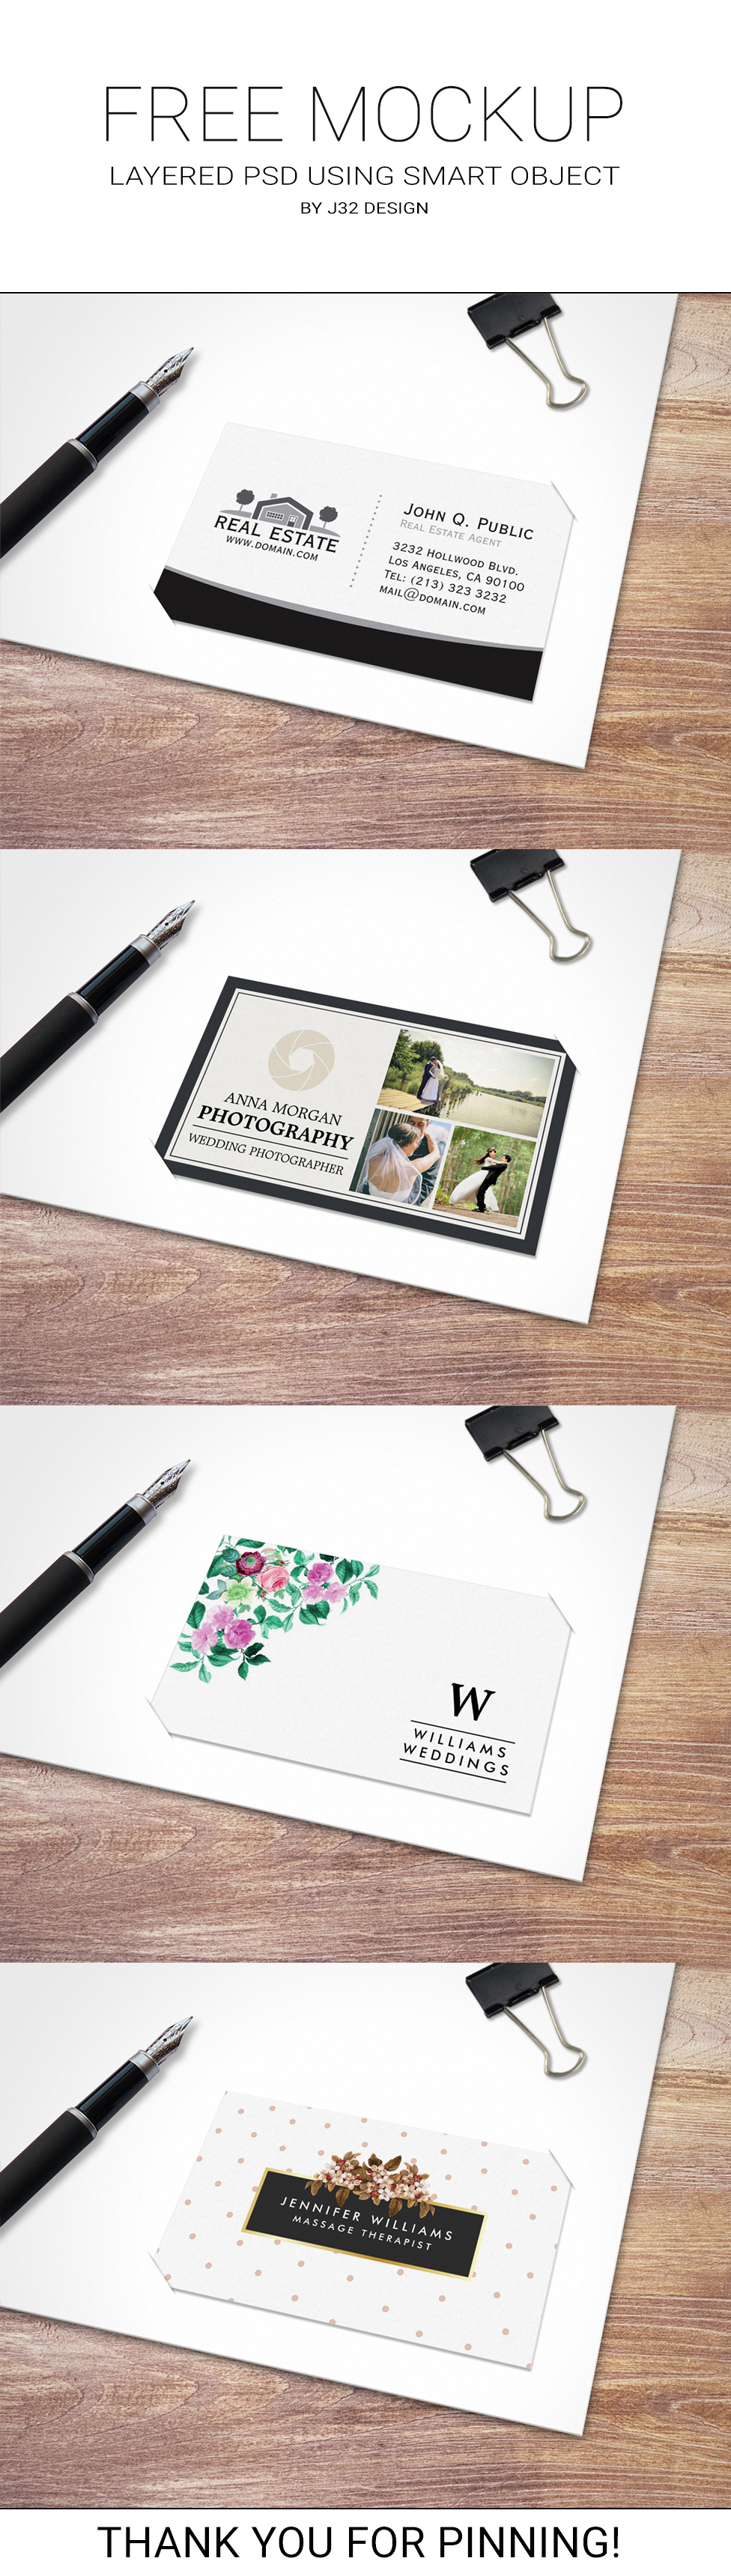 Free business card mockup by J32 Design. Download this great freebie ...